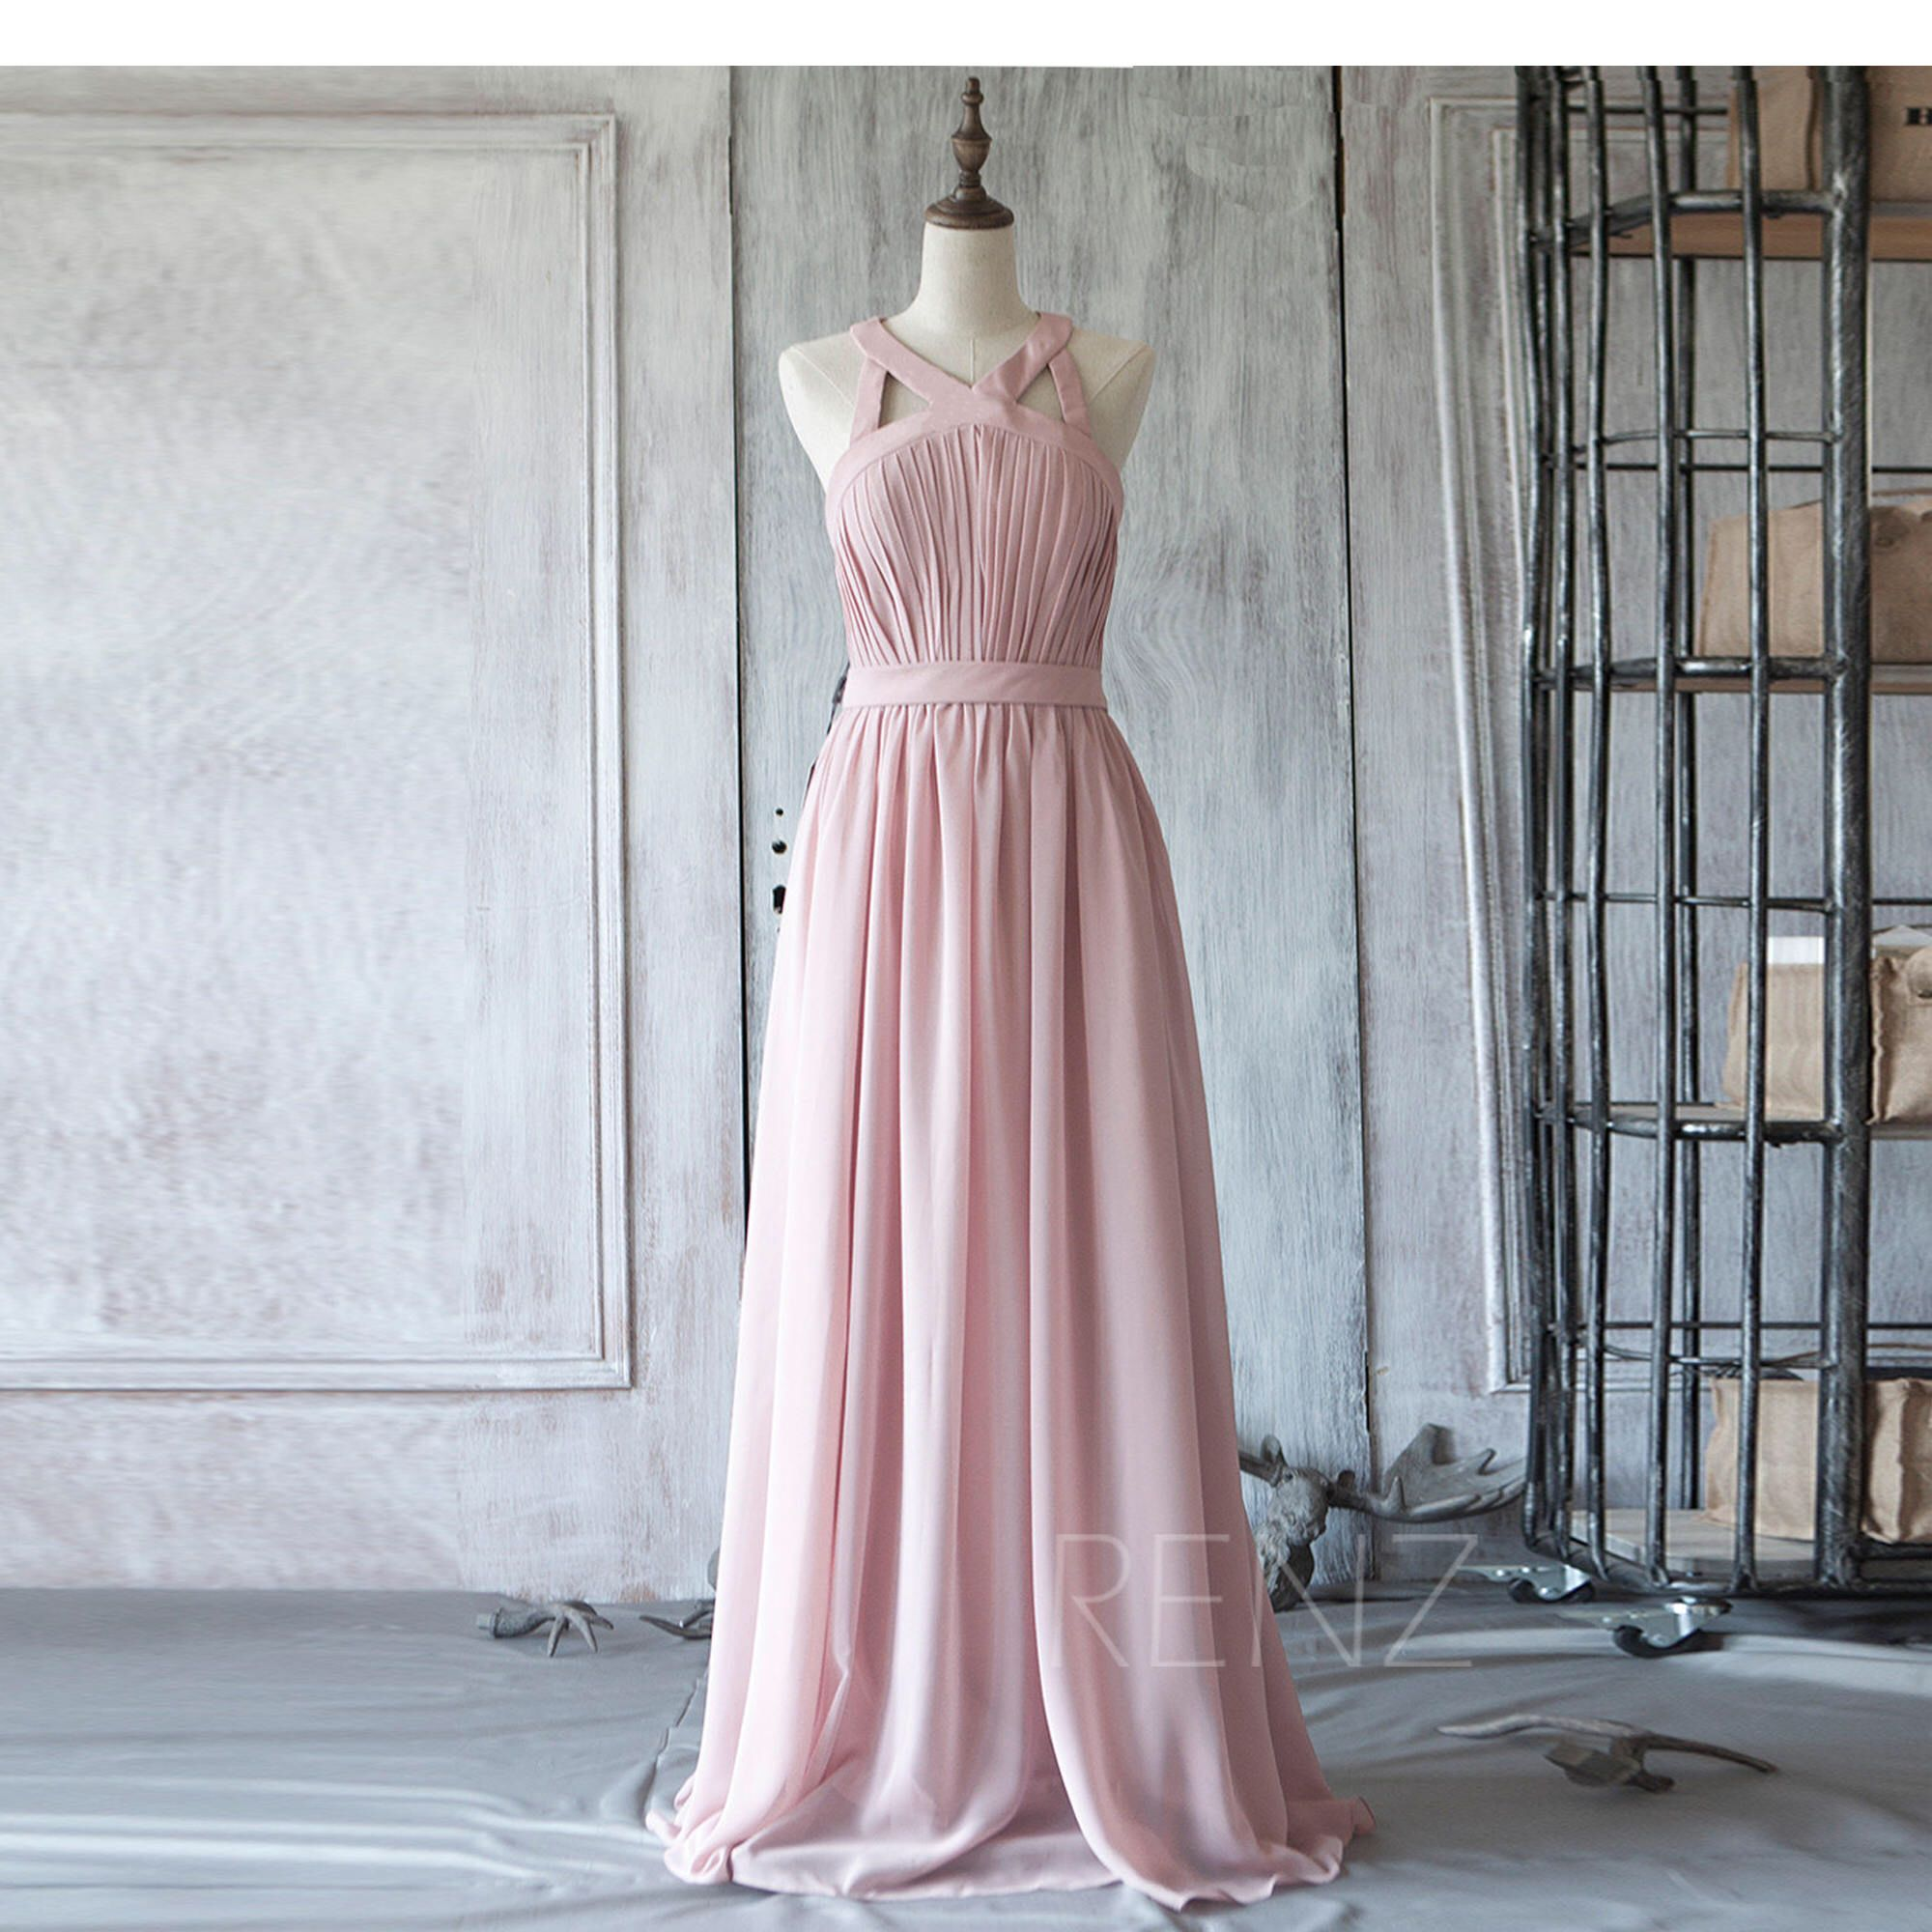 Bridesmaid Dress Dusty Rose Chiffon Wedding Dress,V Neck Long Maxi ...